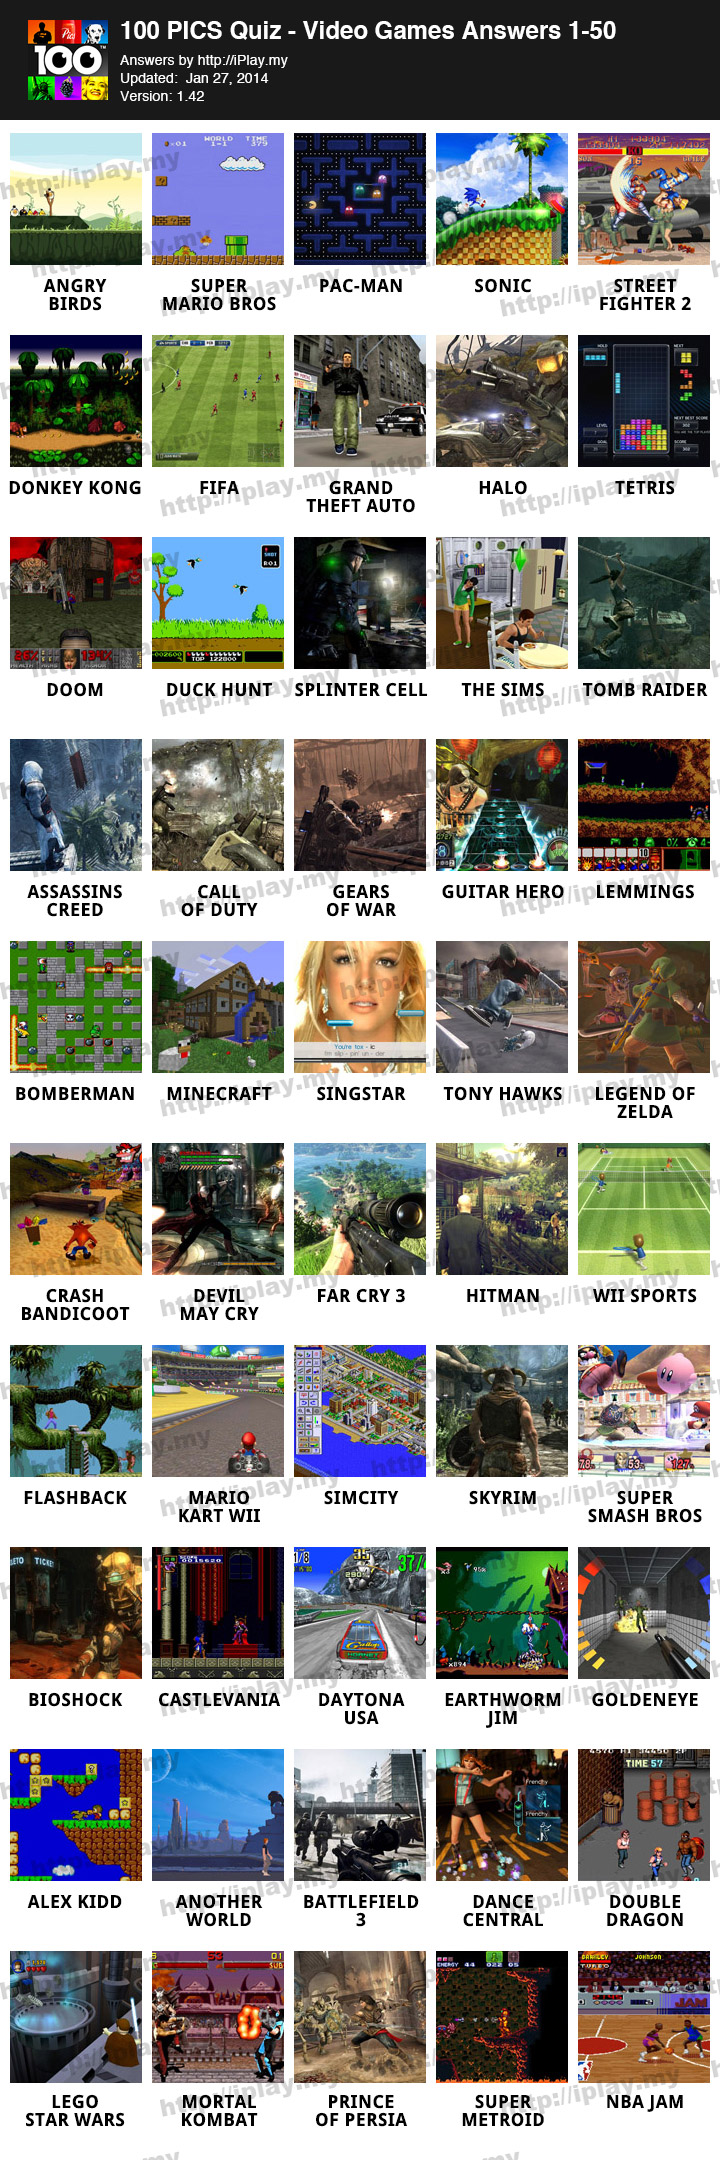 100 PICS Quiz     Video Games Pack Answers   iPlay my 100 PICS Quiz     Video Games Pack Answers 1 50